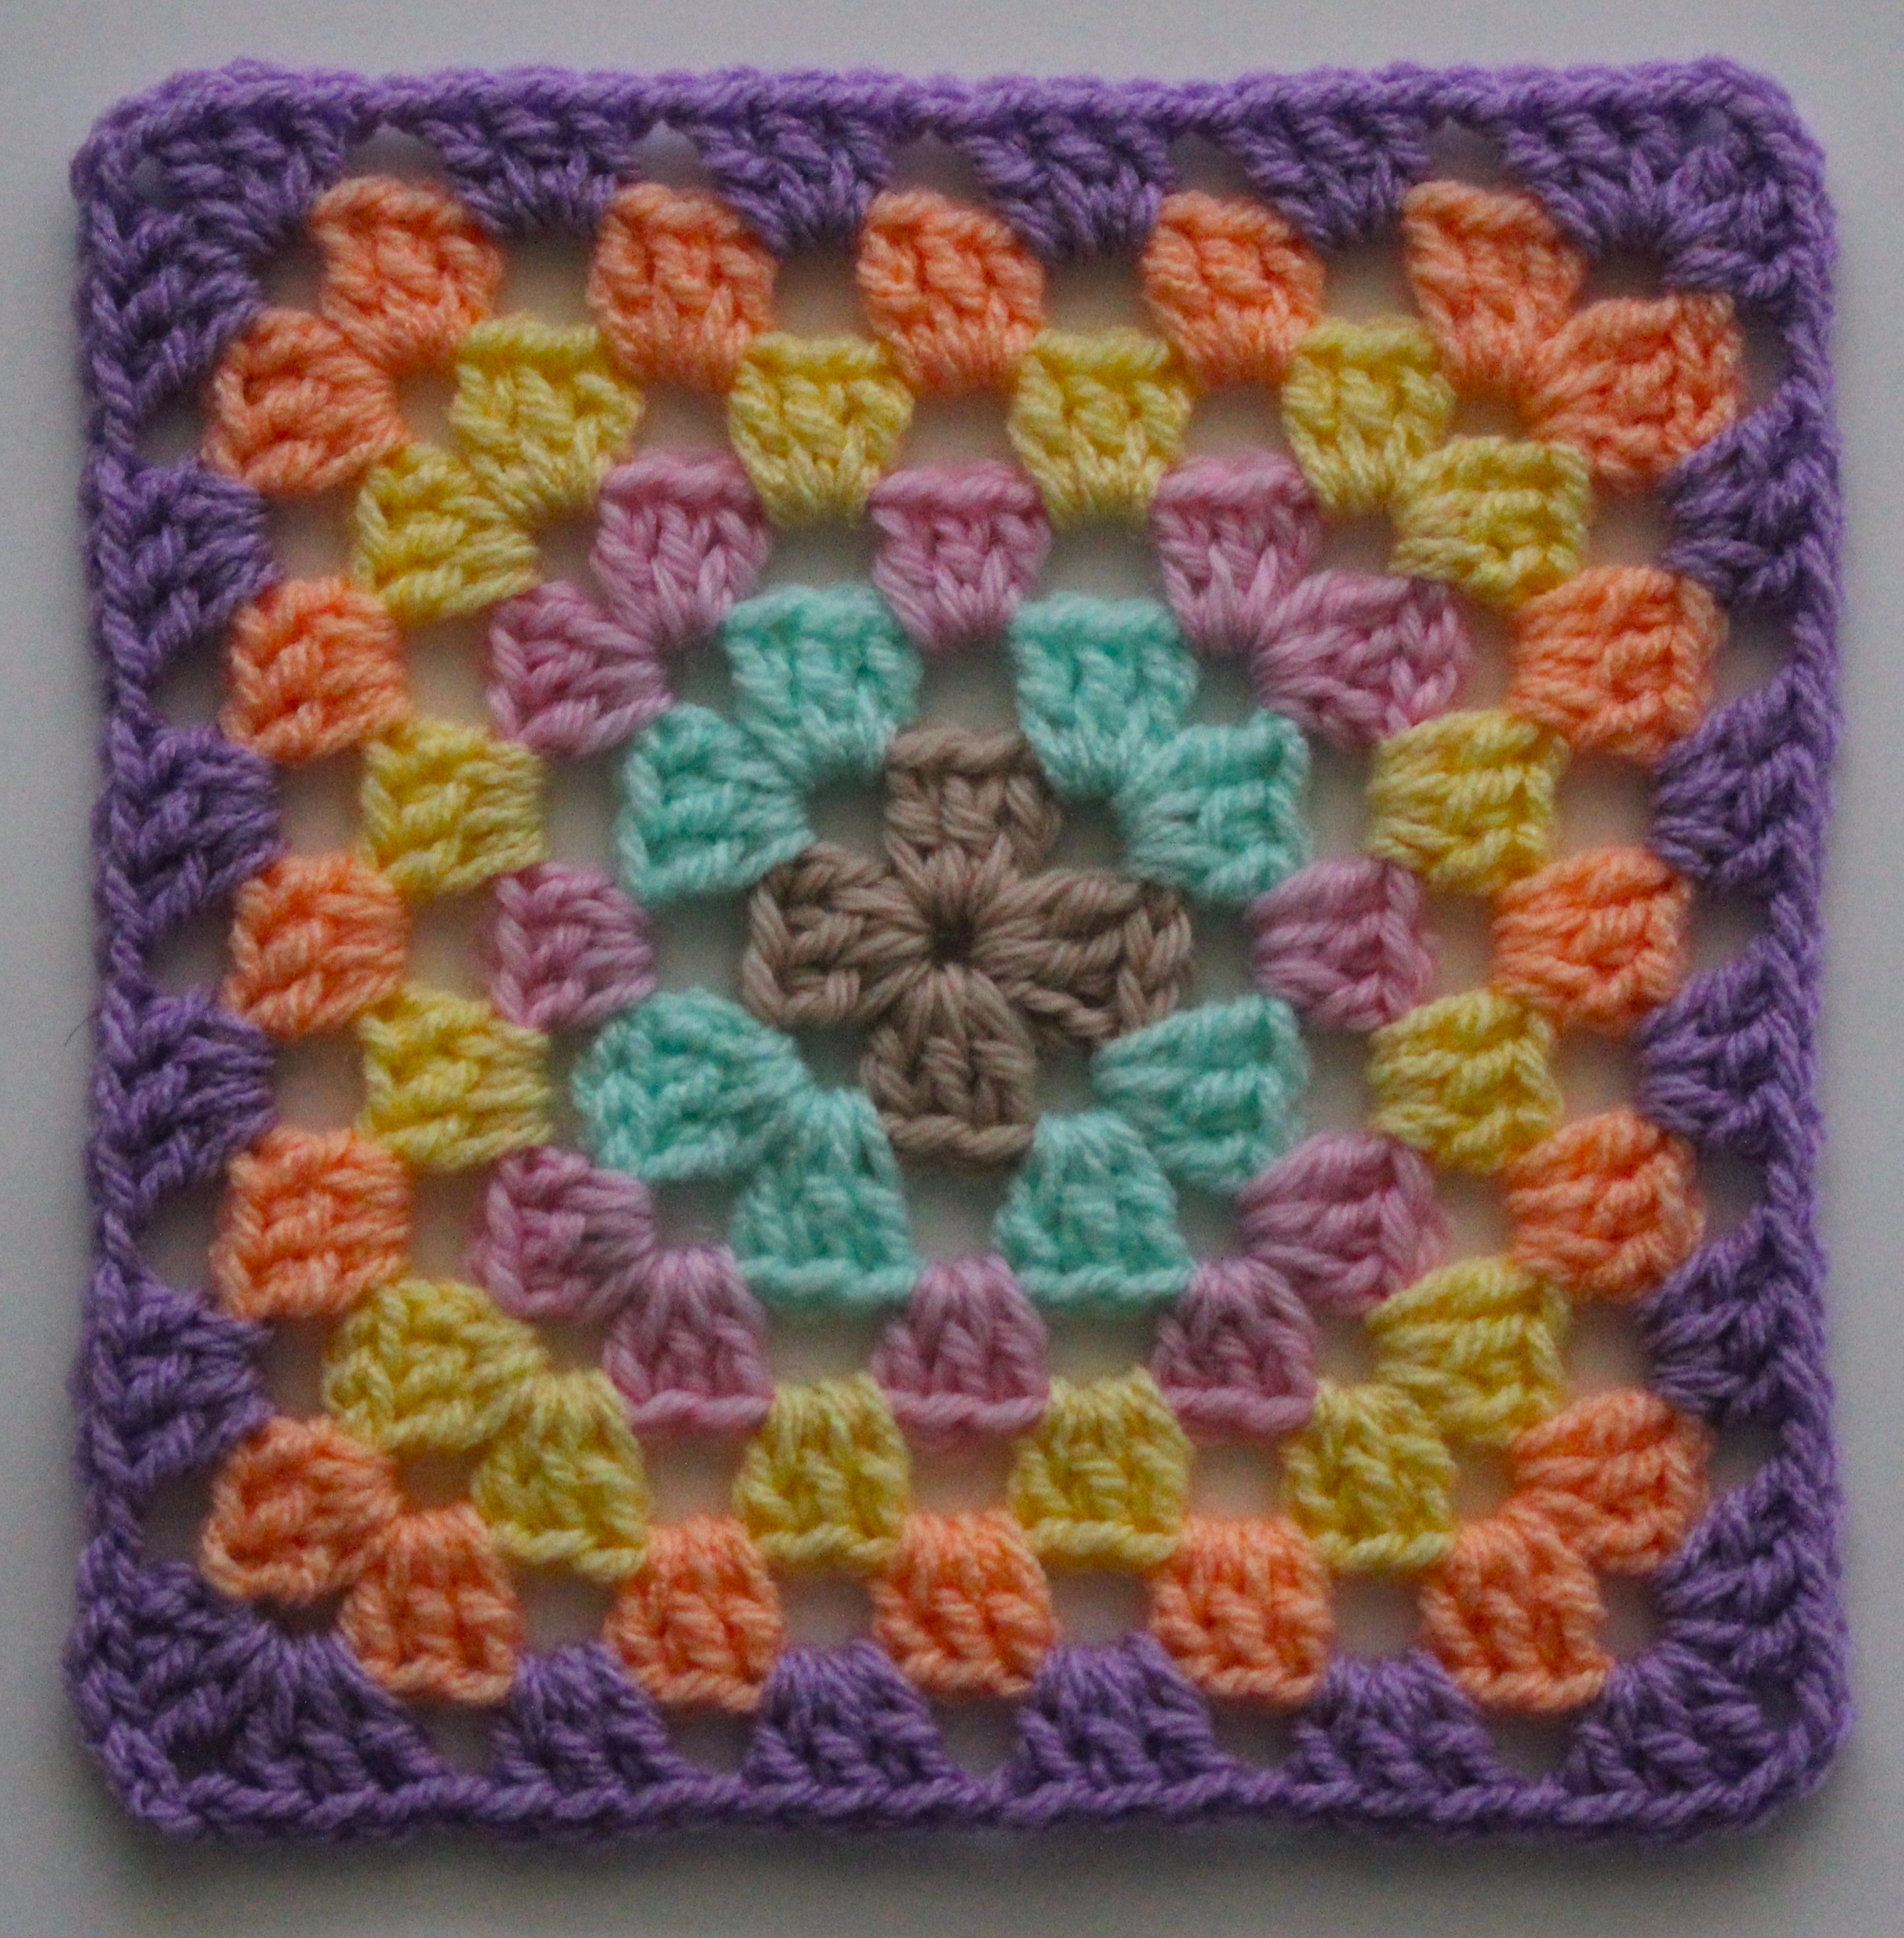 Crocheting Granny Squares Together Video : FREE Motif Monday: Basic Granny Square Sarah London